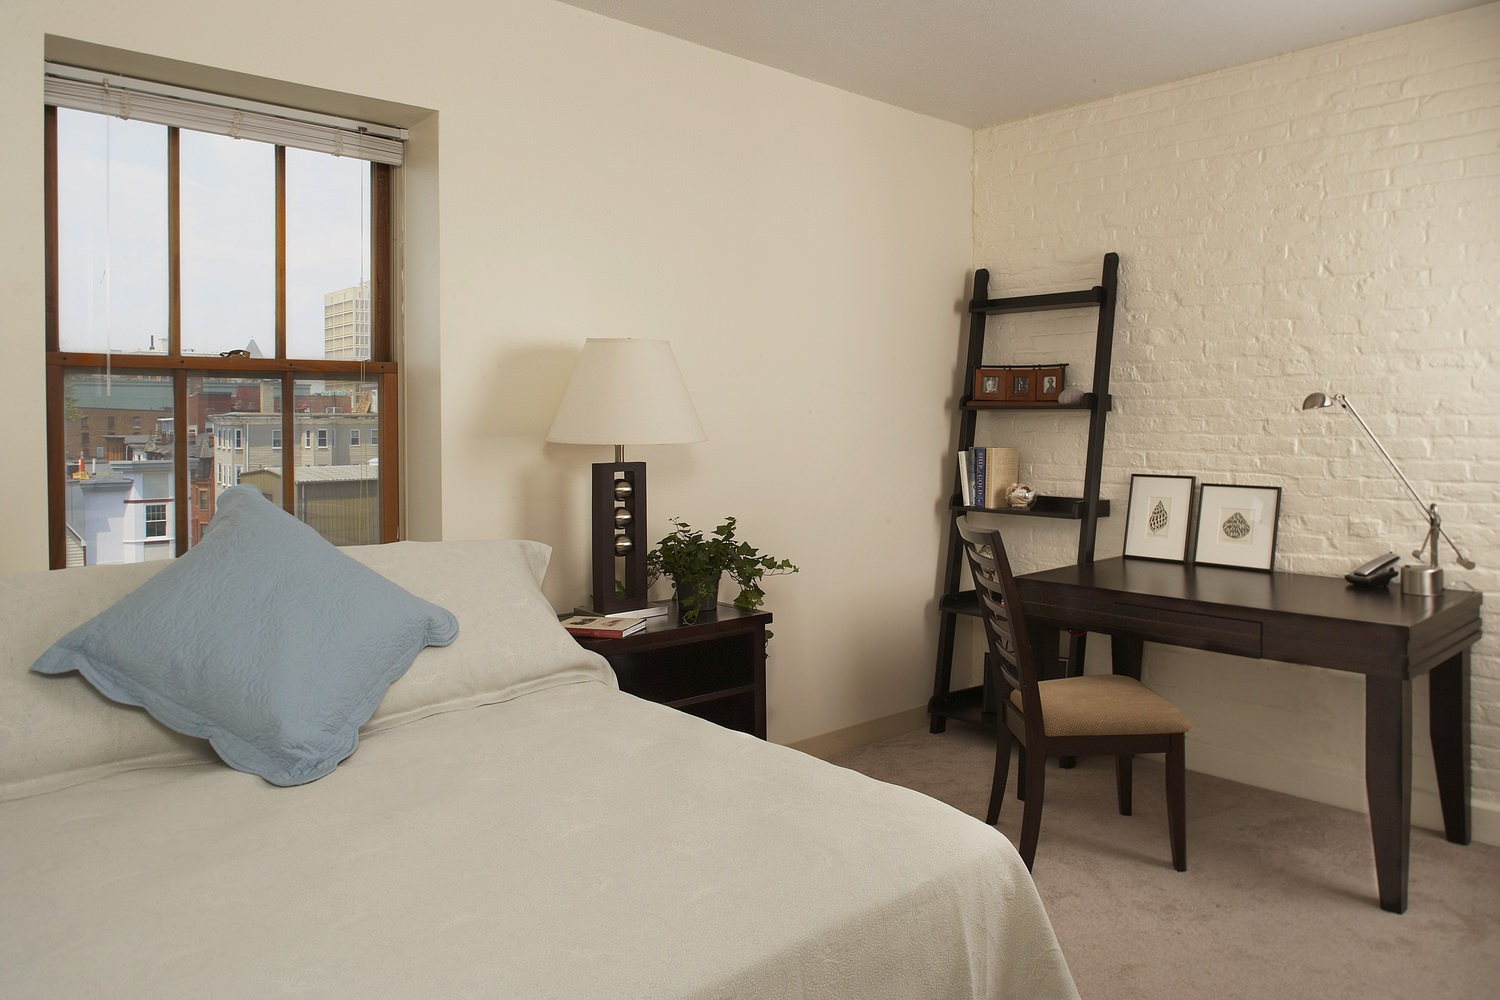 A bedroom that has a bed with white sheets on it and a desk that is up against the wall.